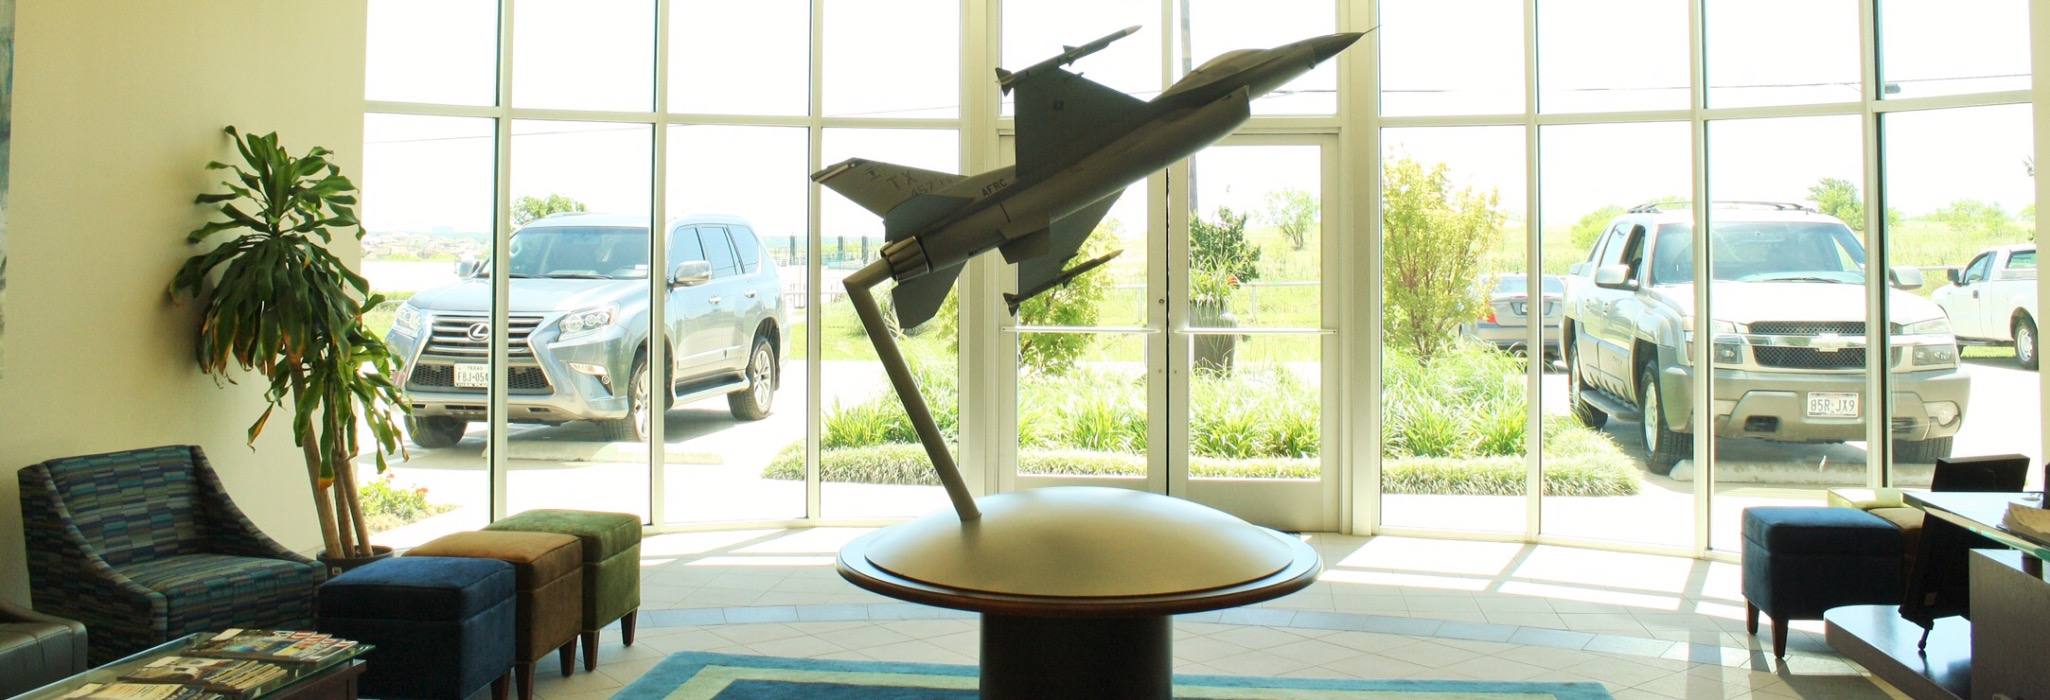 Aerospace & Commercial Tech Industrial Construction Lobby Front